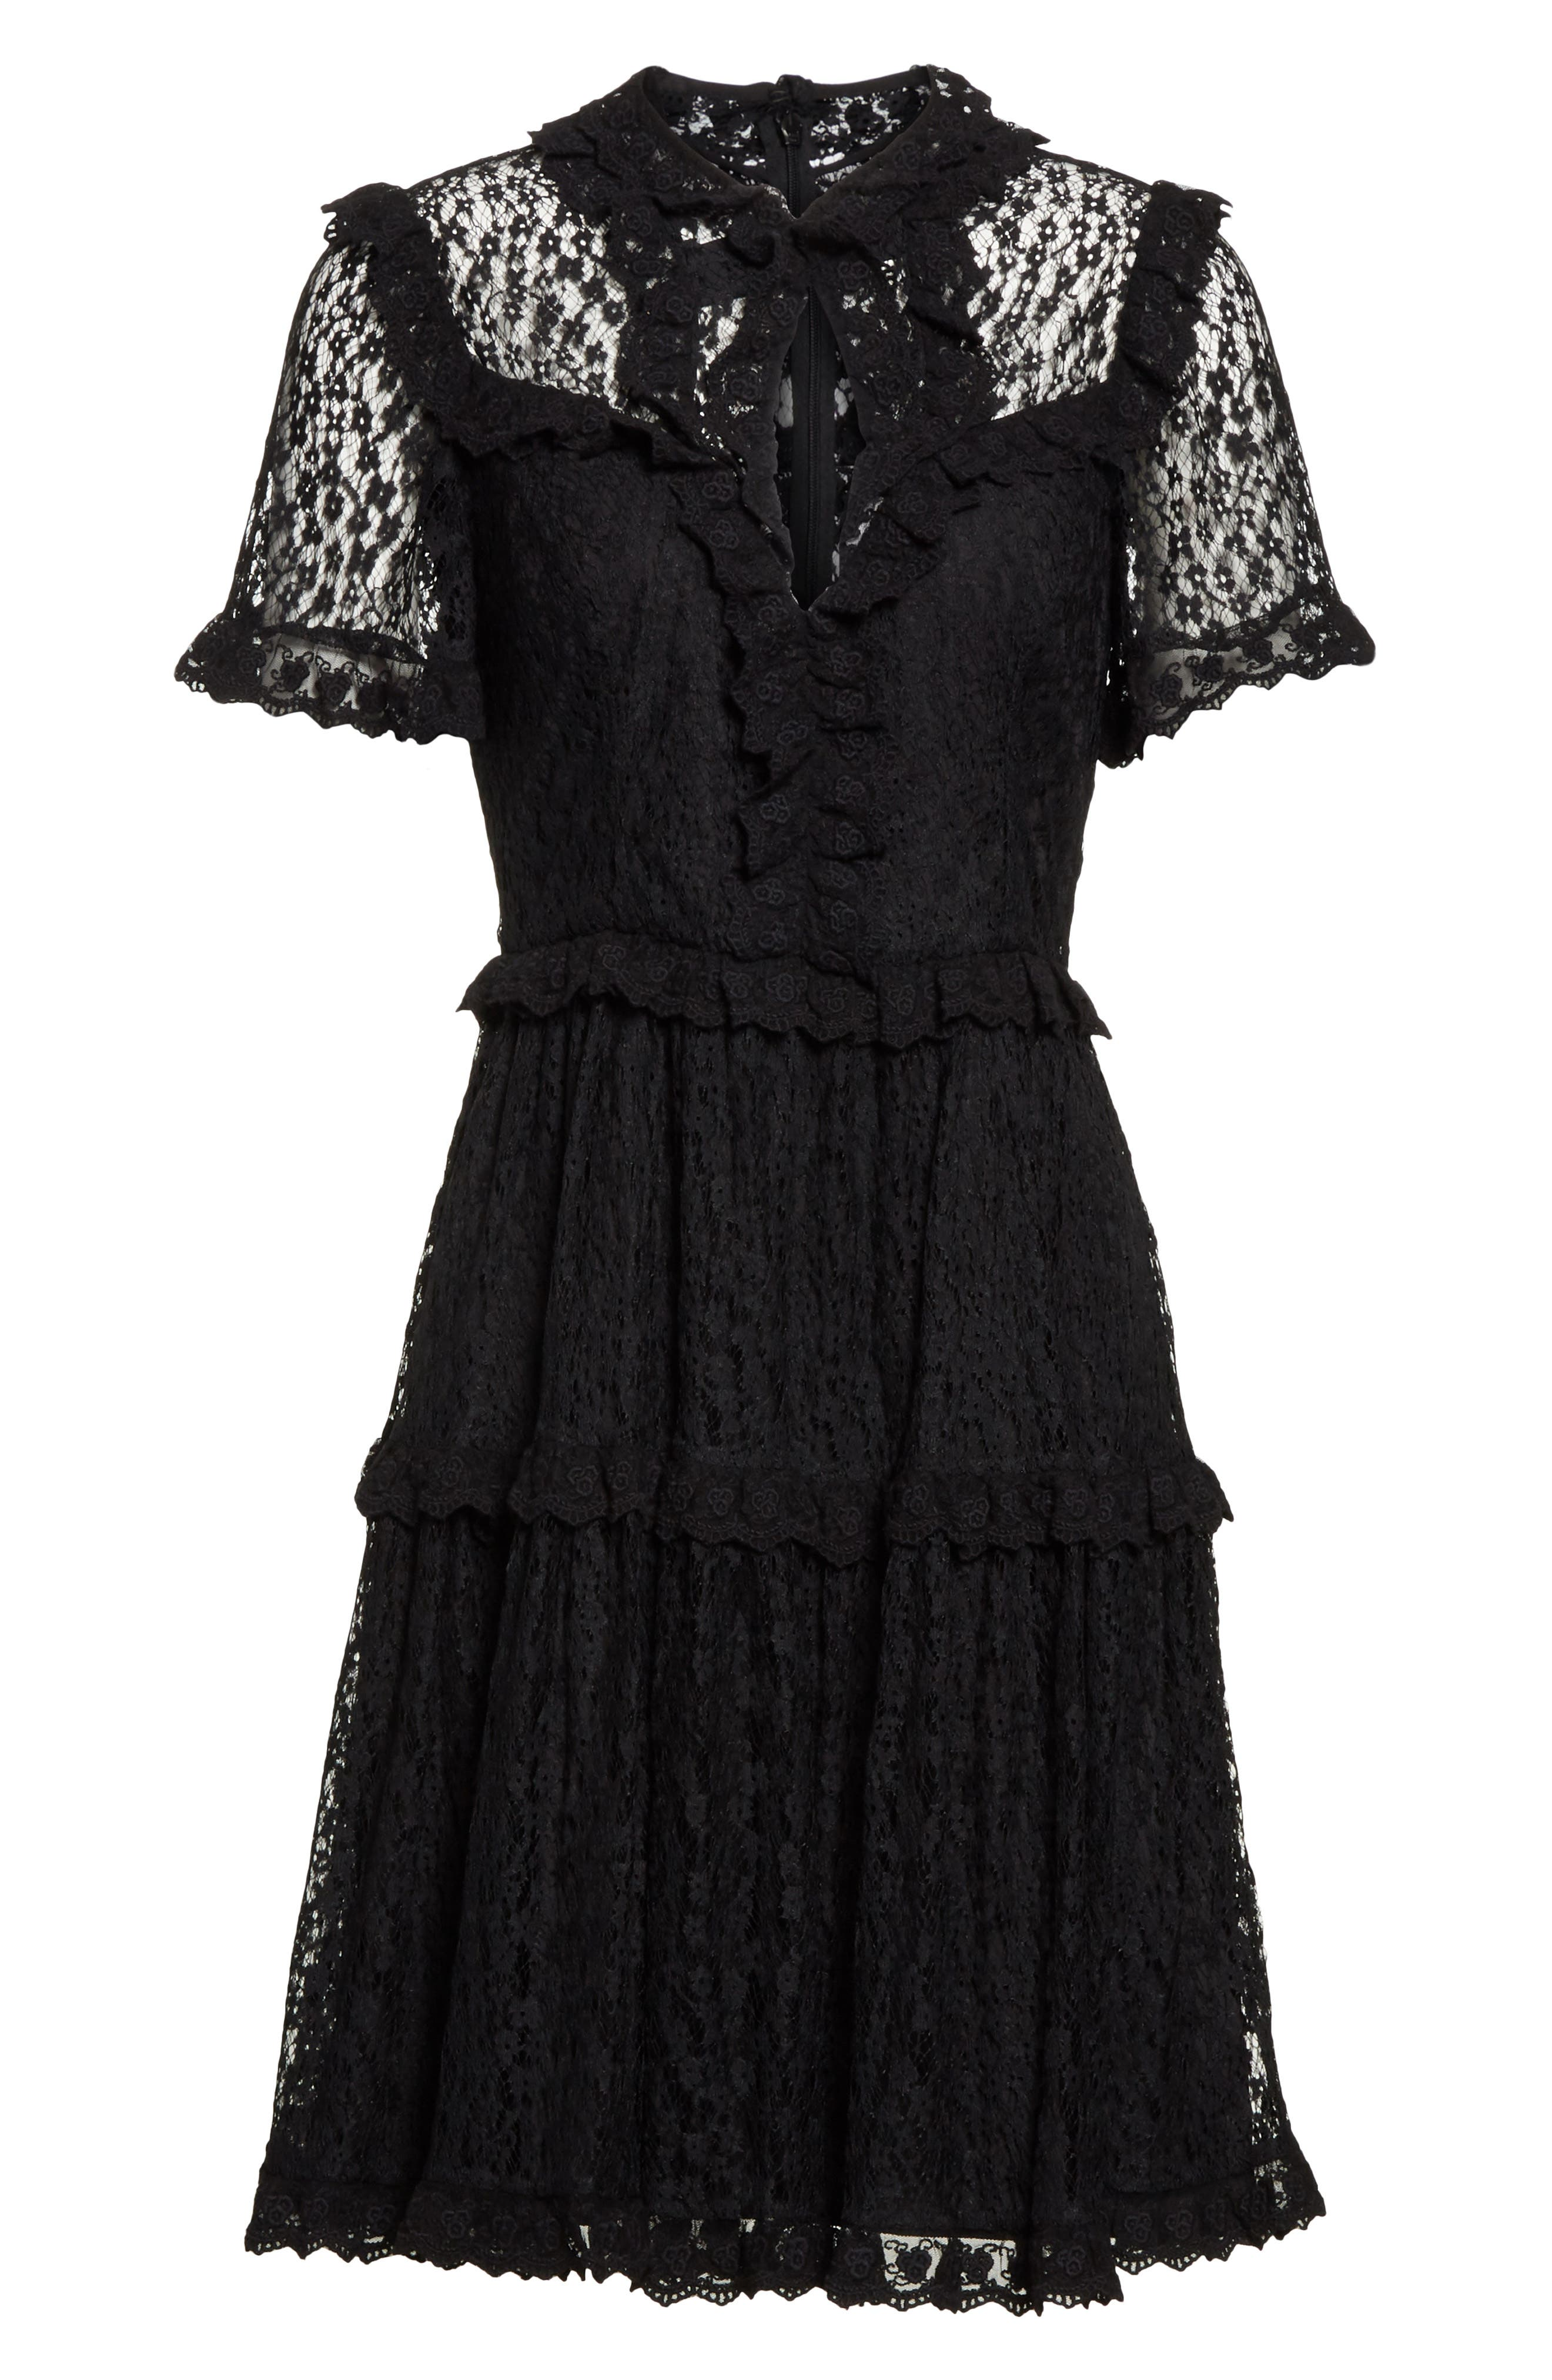 Daisy Lace Dress,                             Alternate thumbnail 6, color,                             001